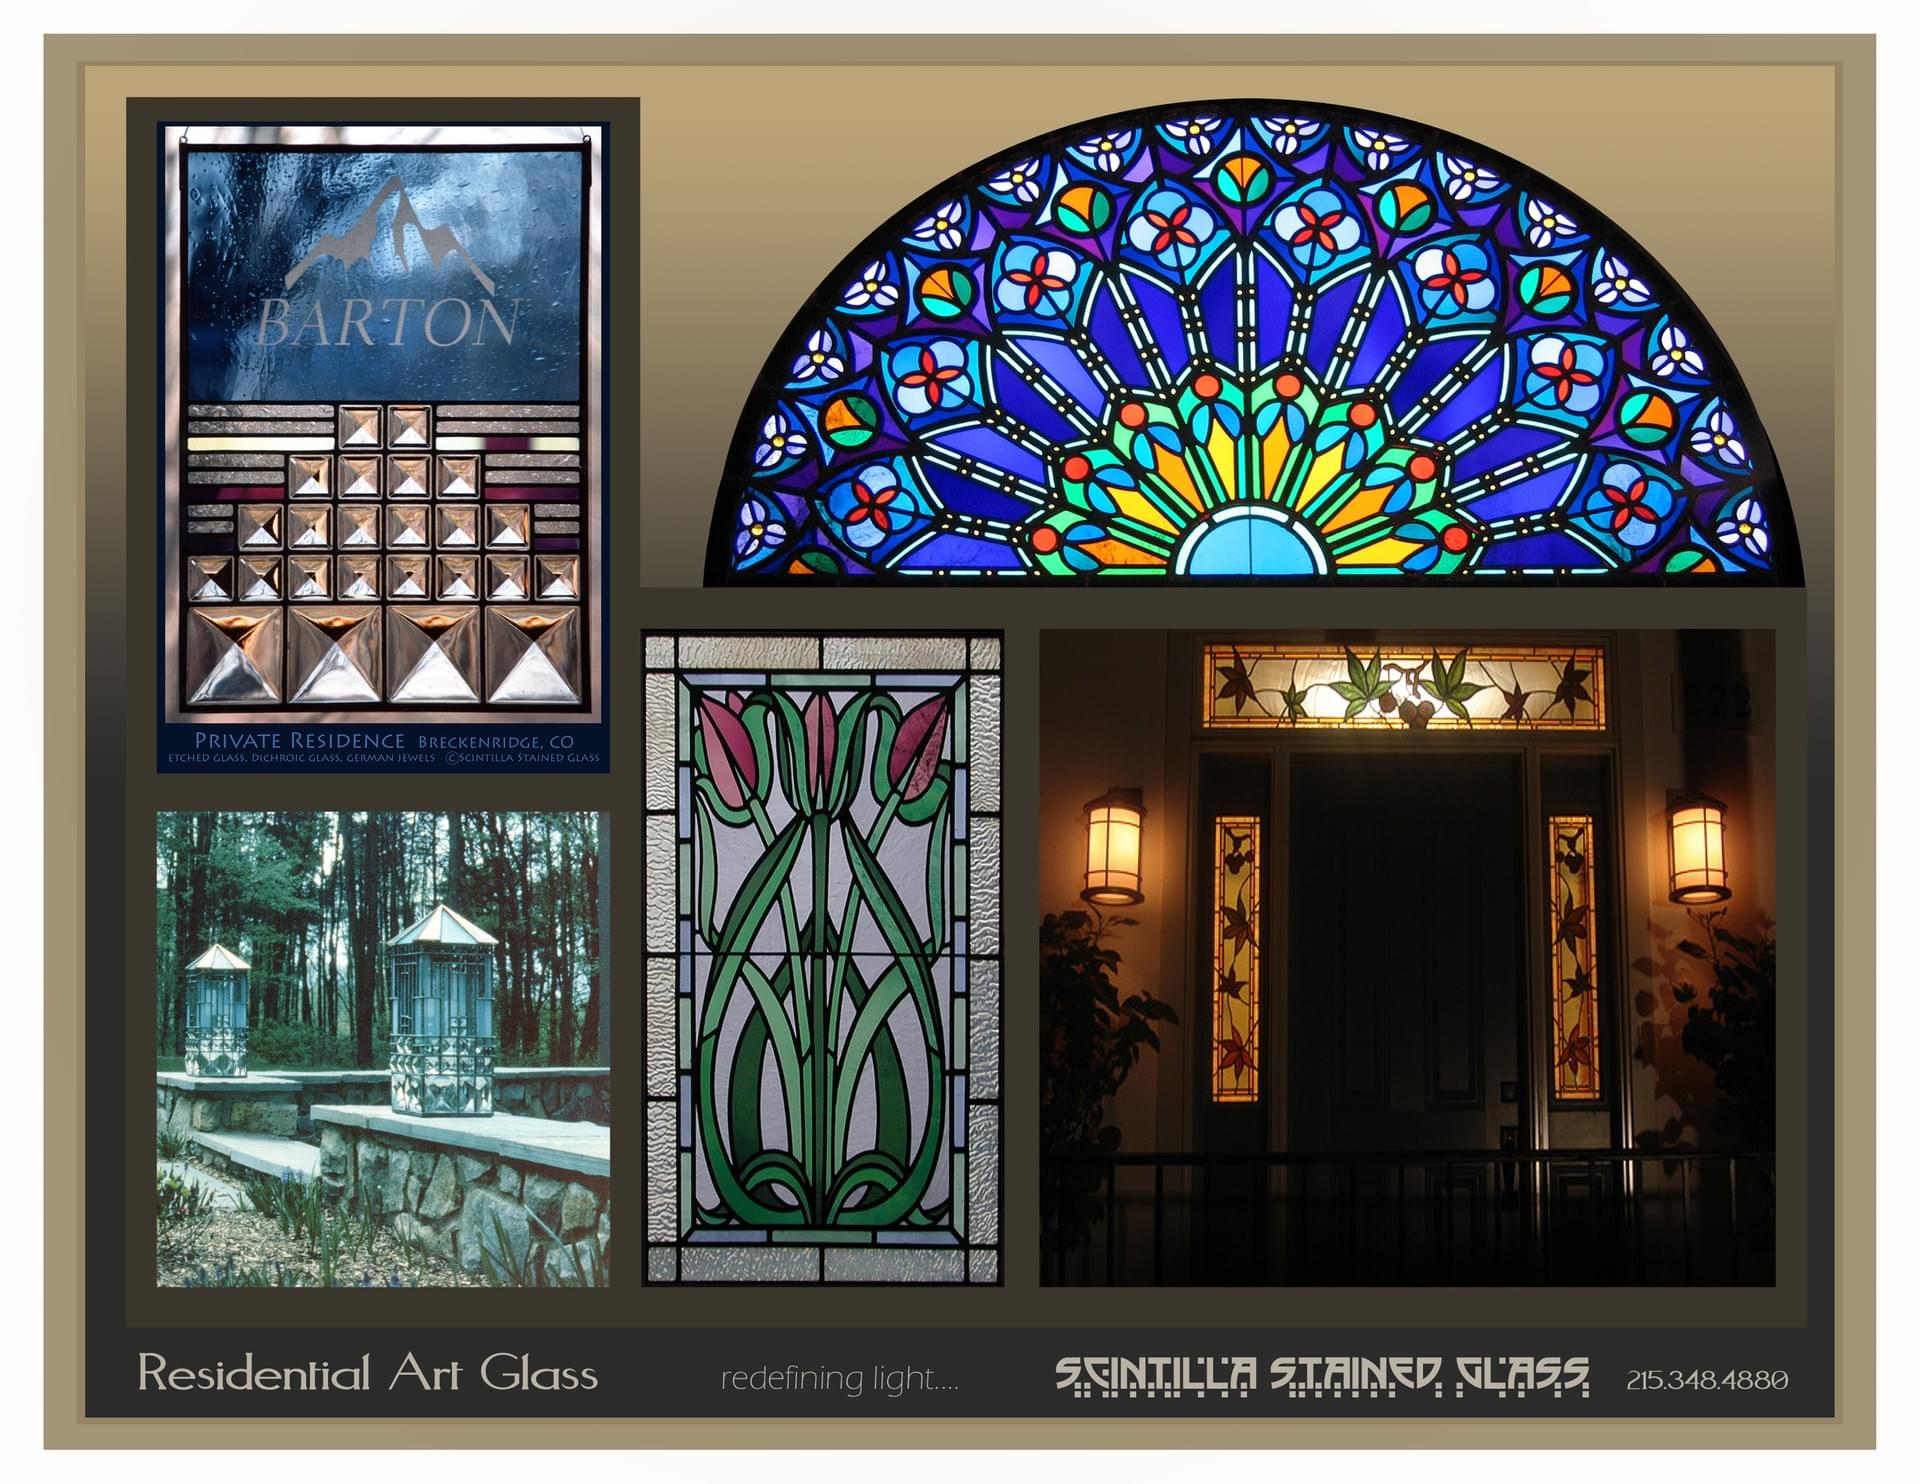 Scintilla Stained Glass